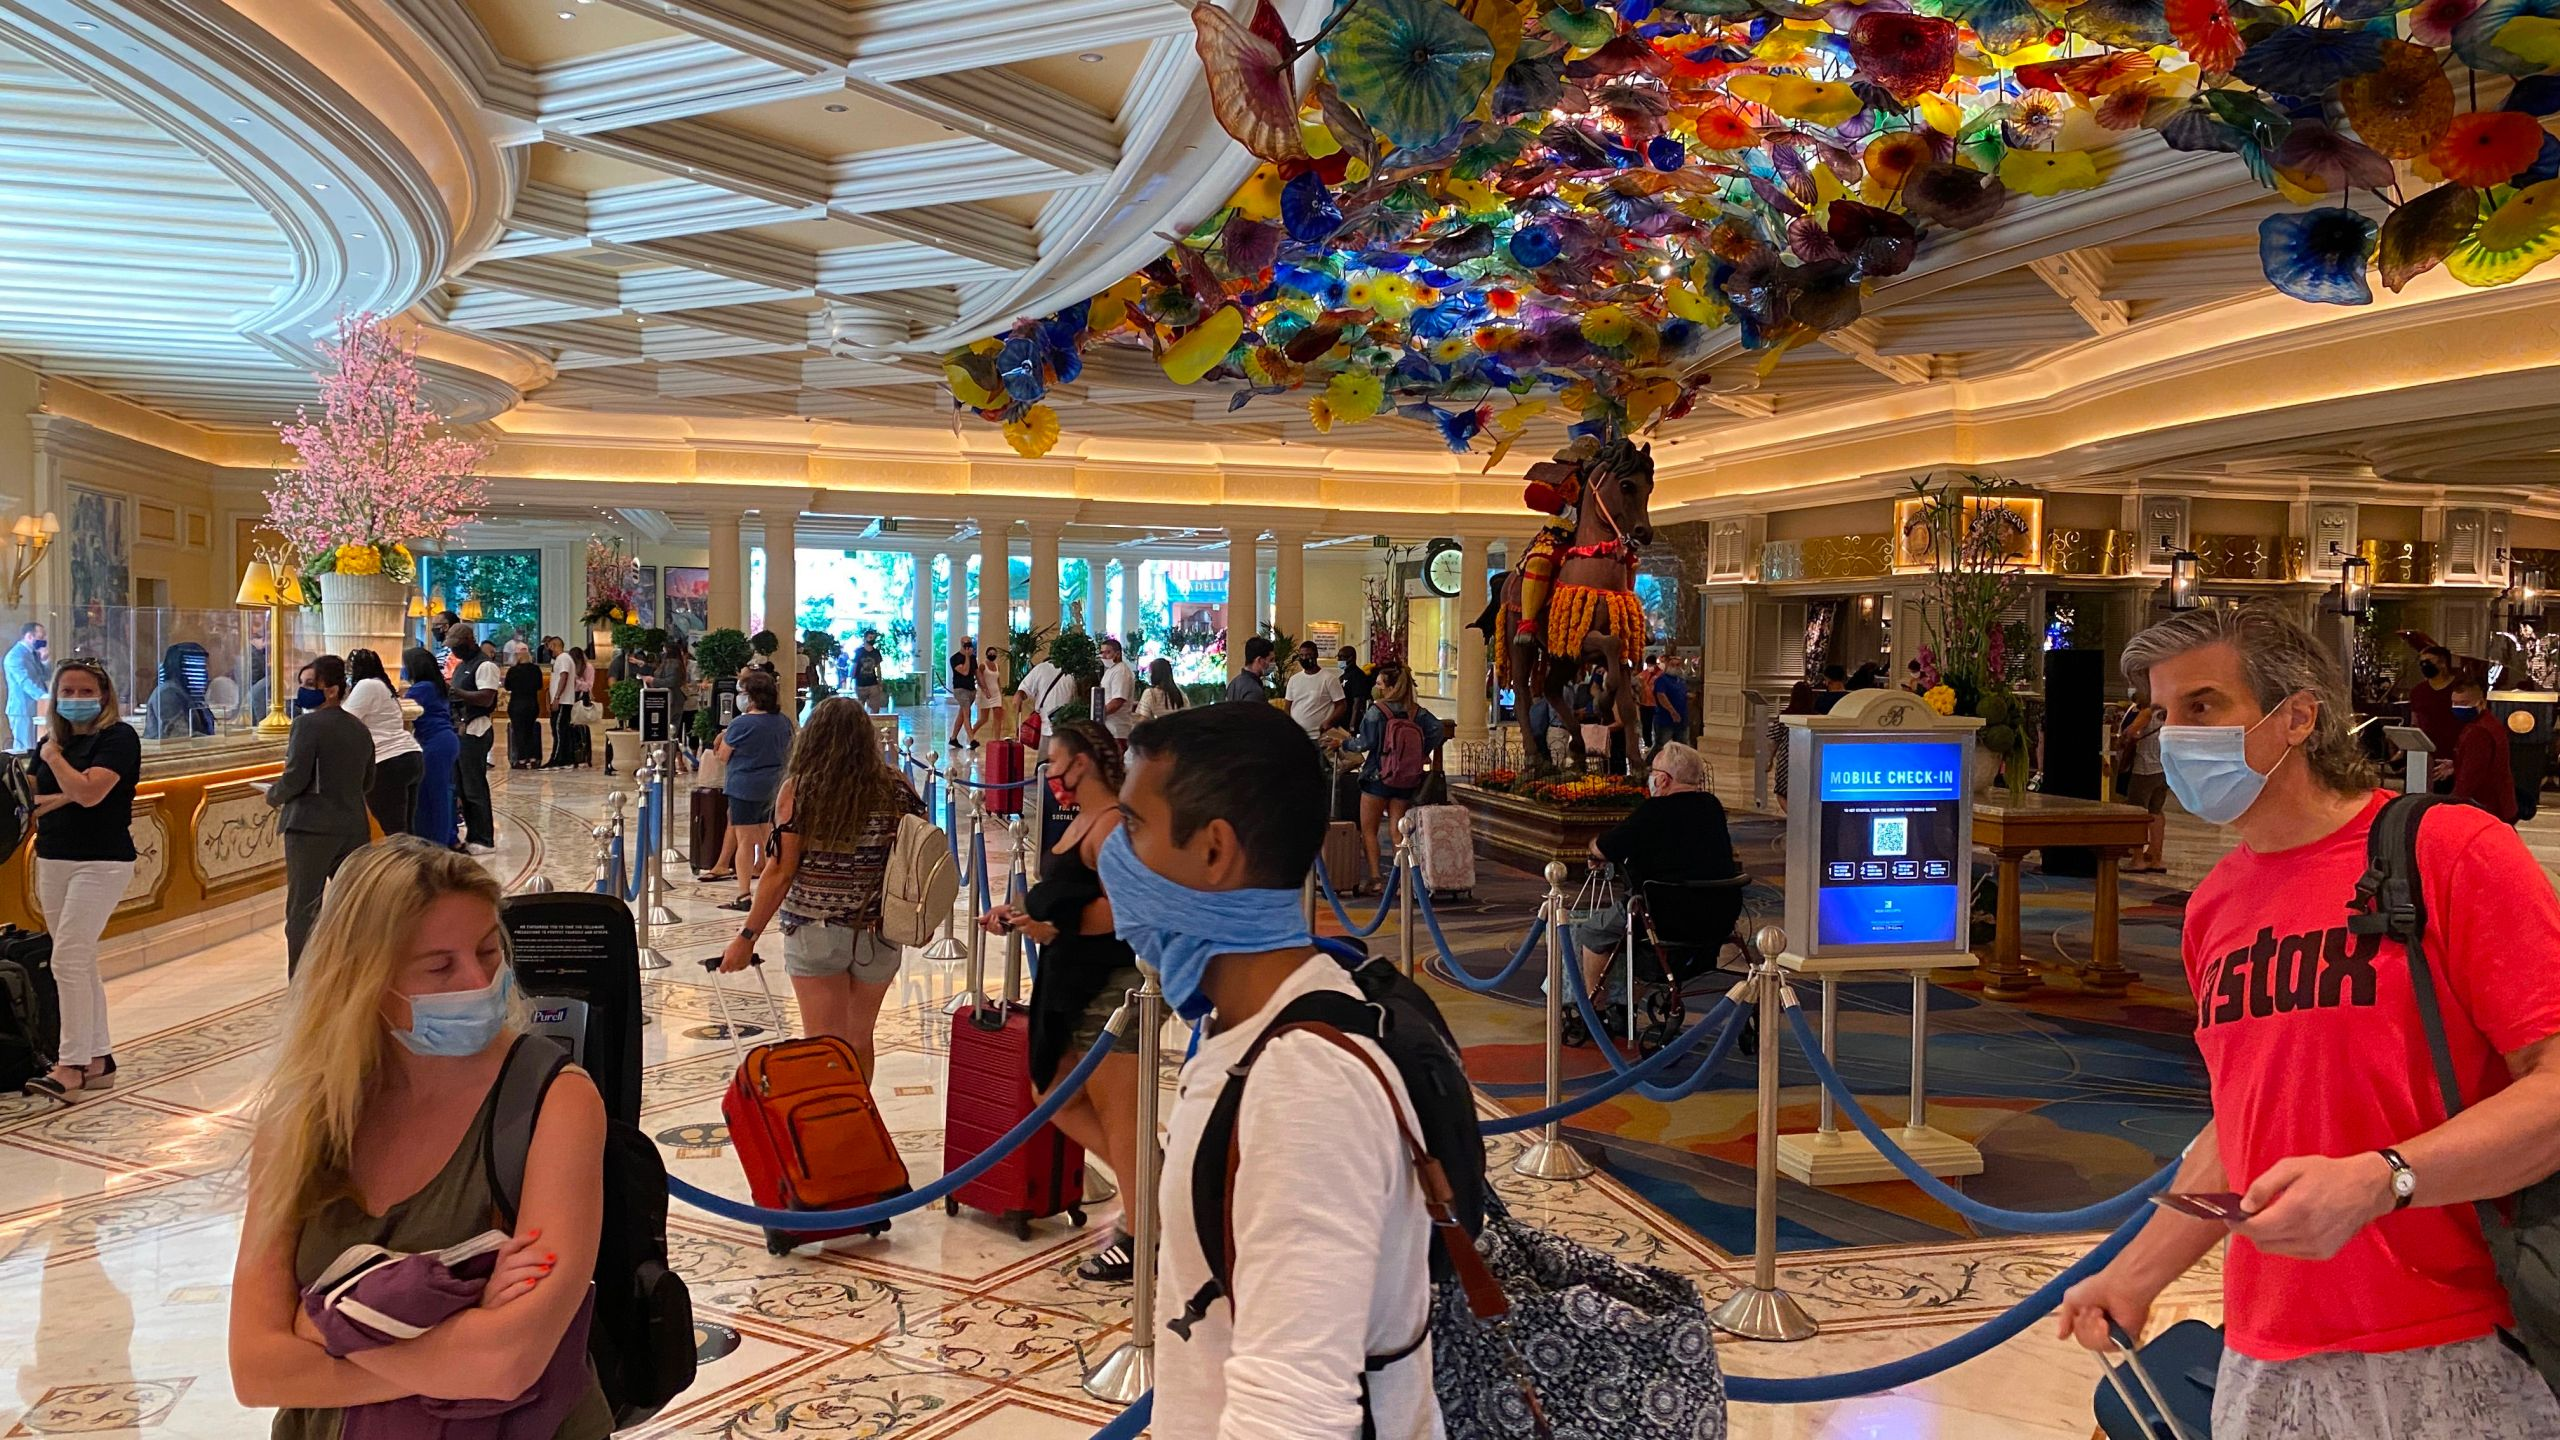 Tourists are wearing a mandatory mask as they wait to check-in at the Bellagio hotel and casino in Las Vegas, Nevada, on Aug. 28, 2020 . (DANIEL SLIM/AFP via Getty Images)